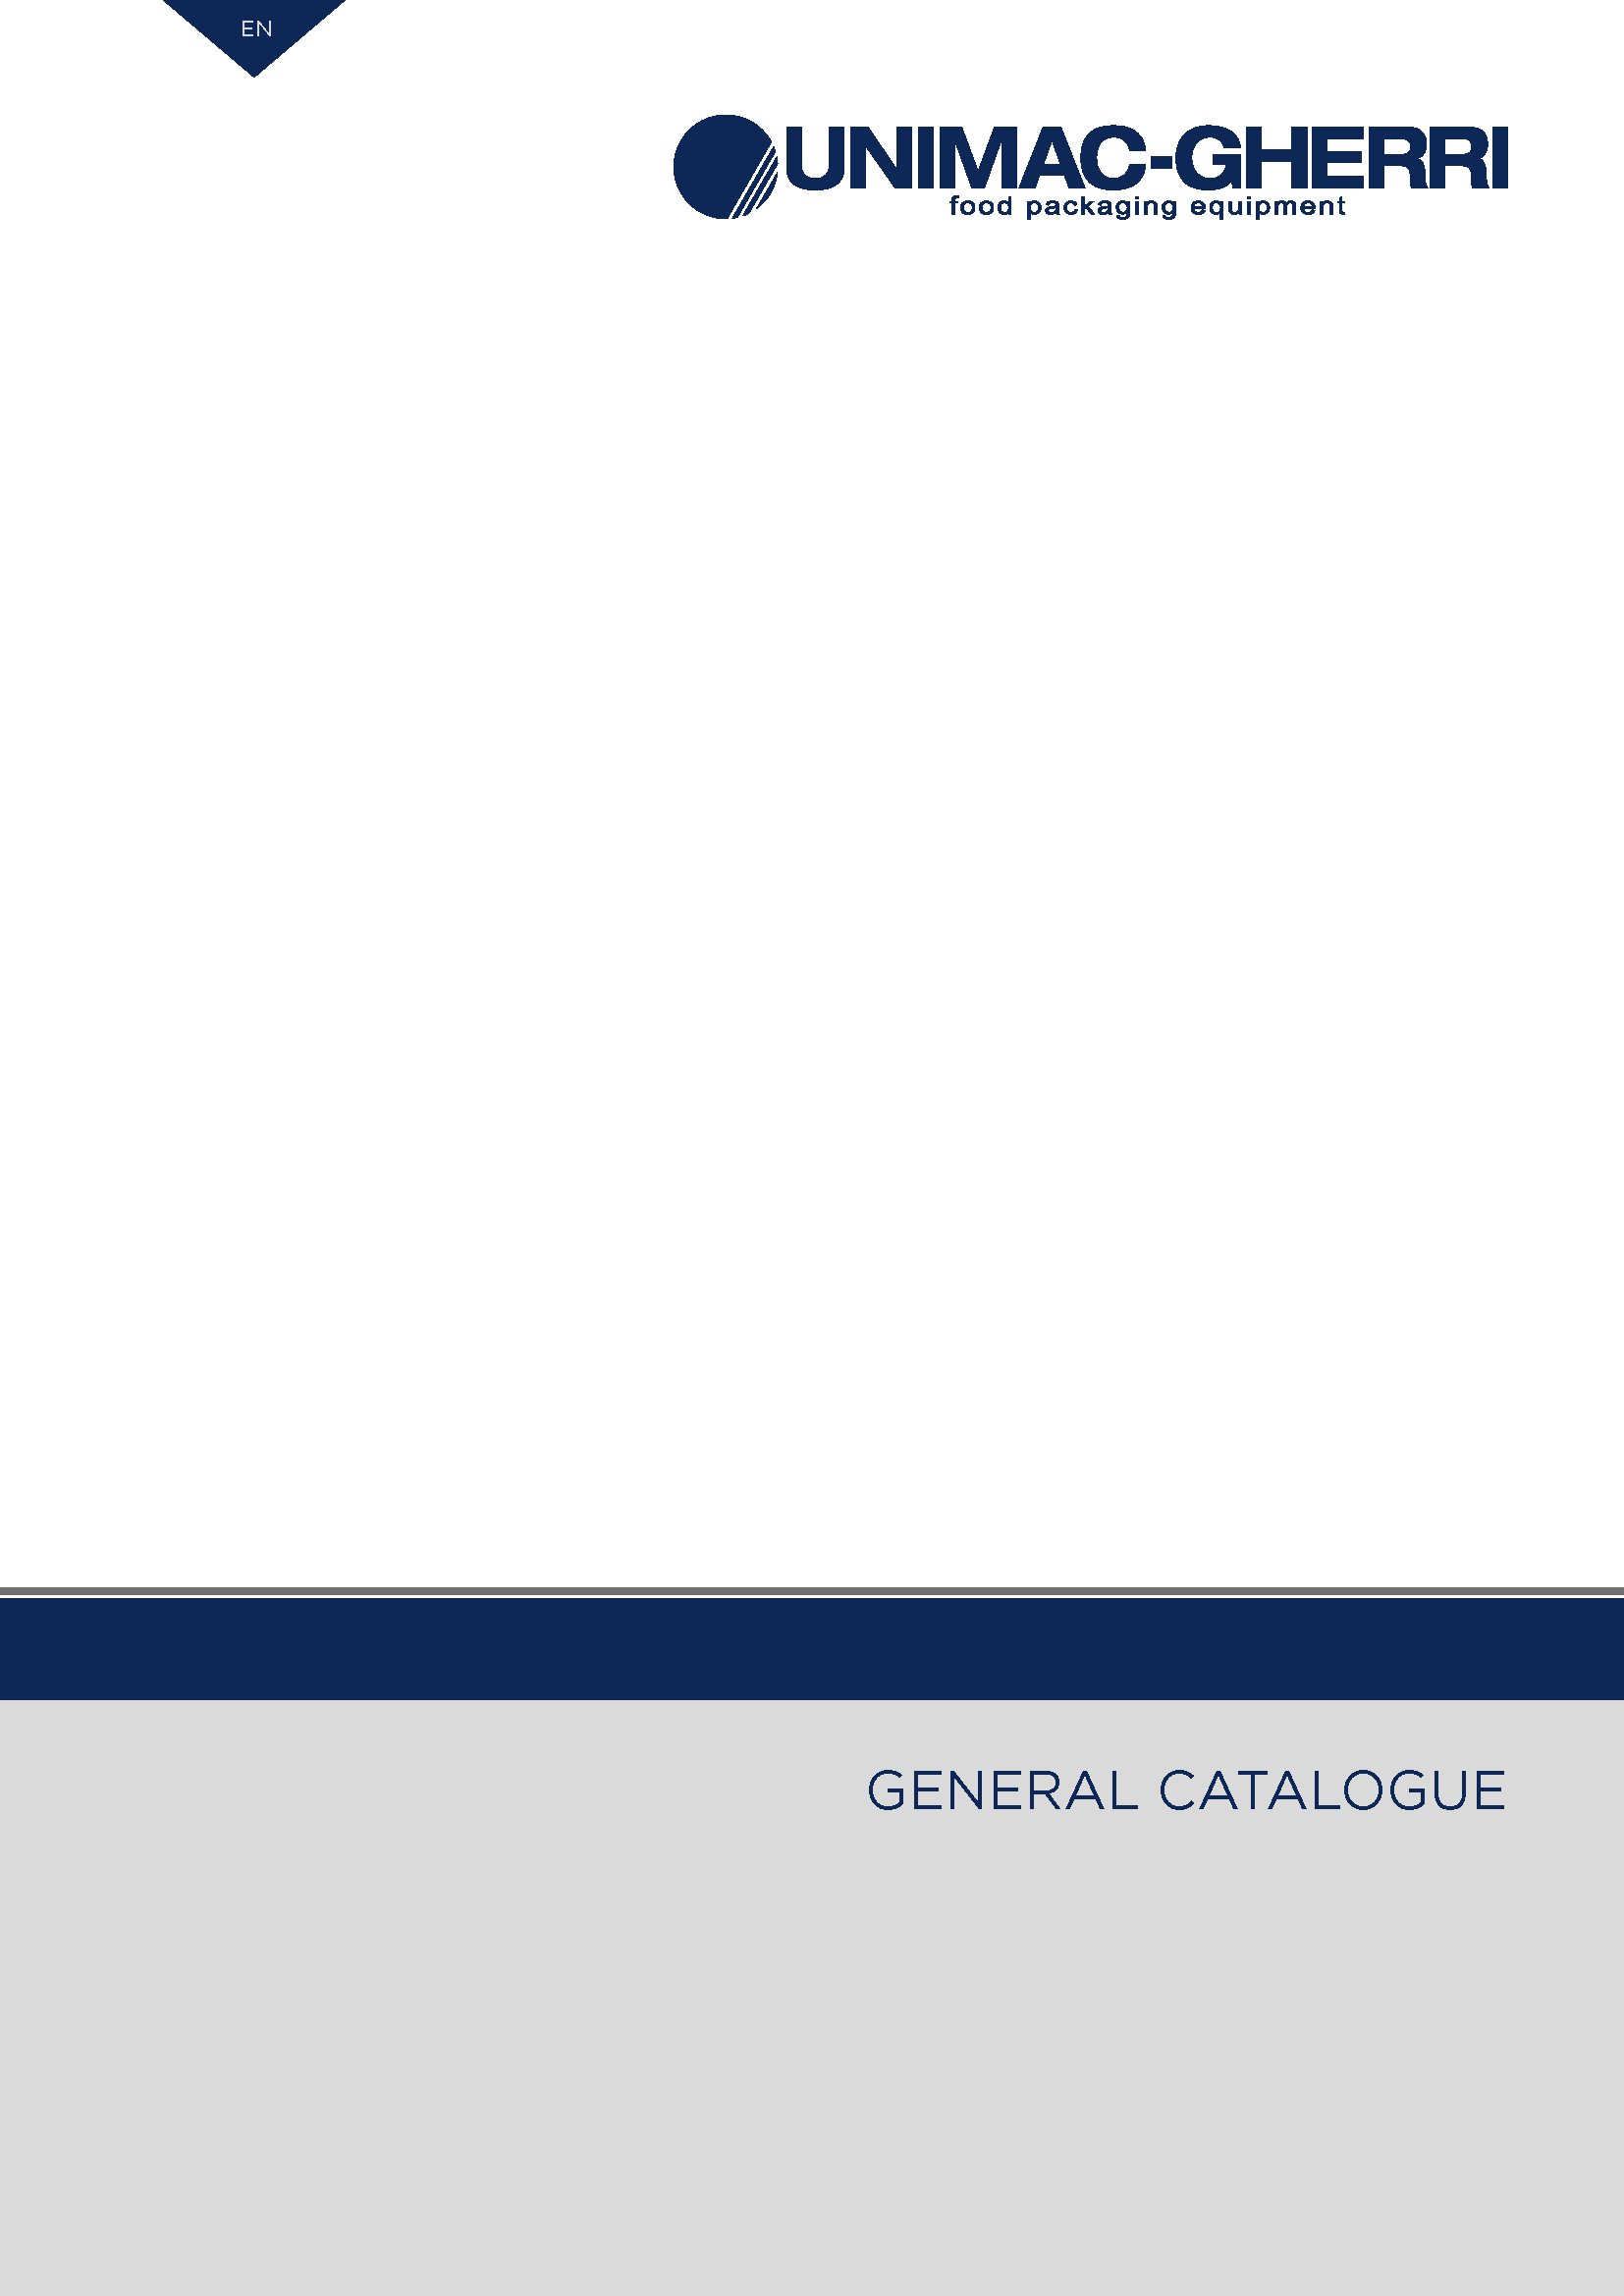 unimac gherri catalogue